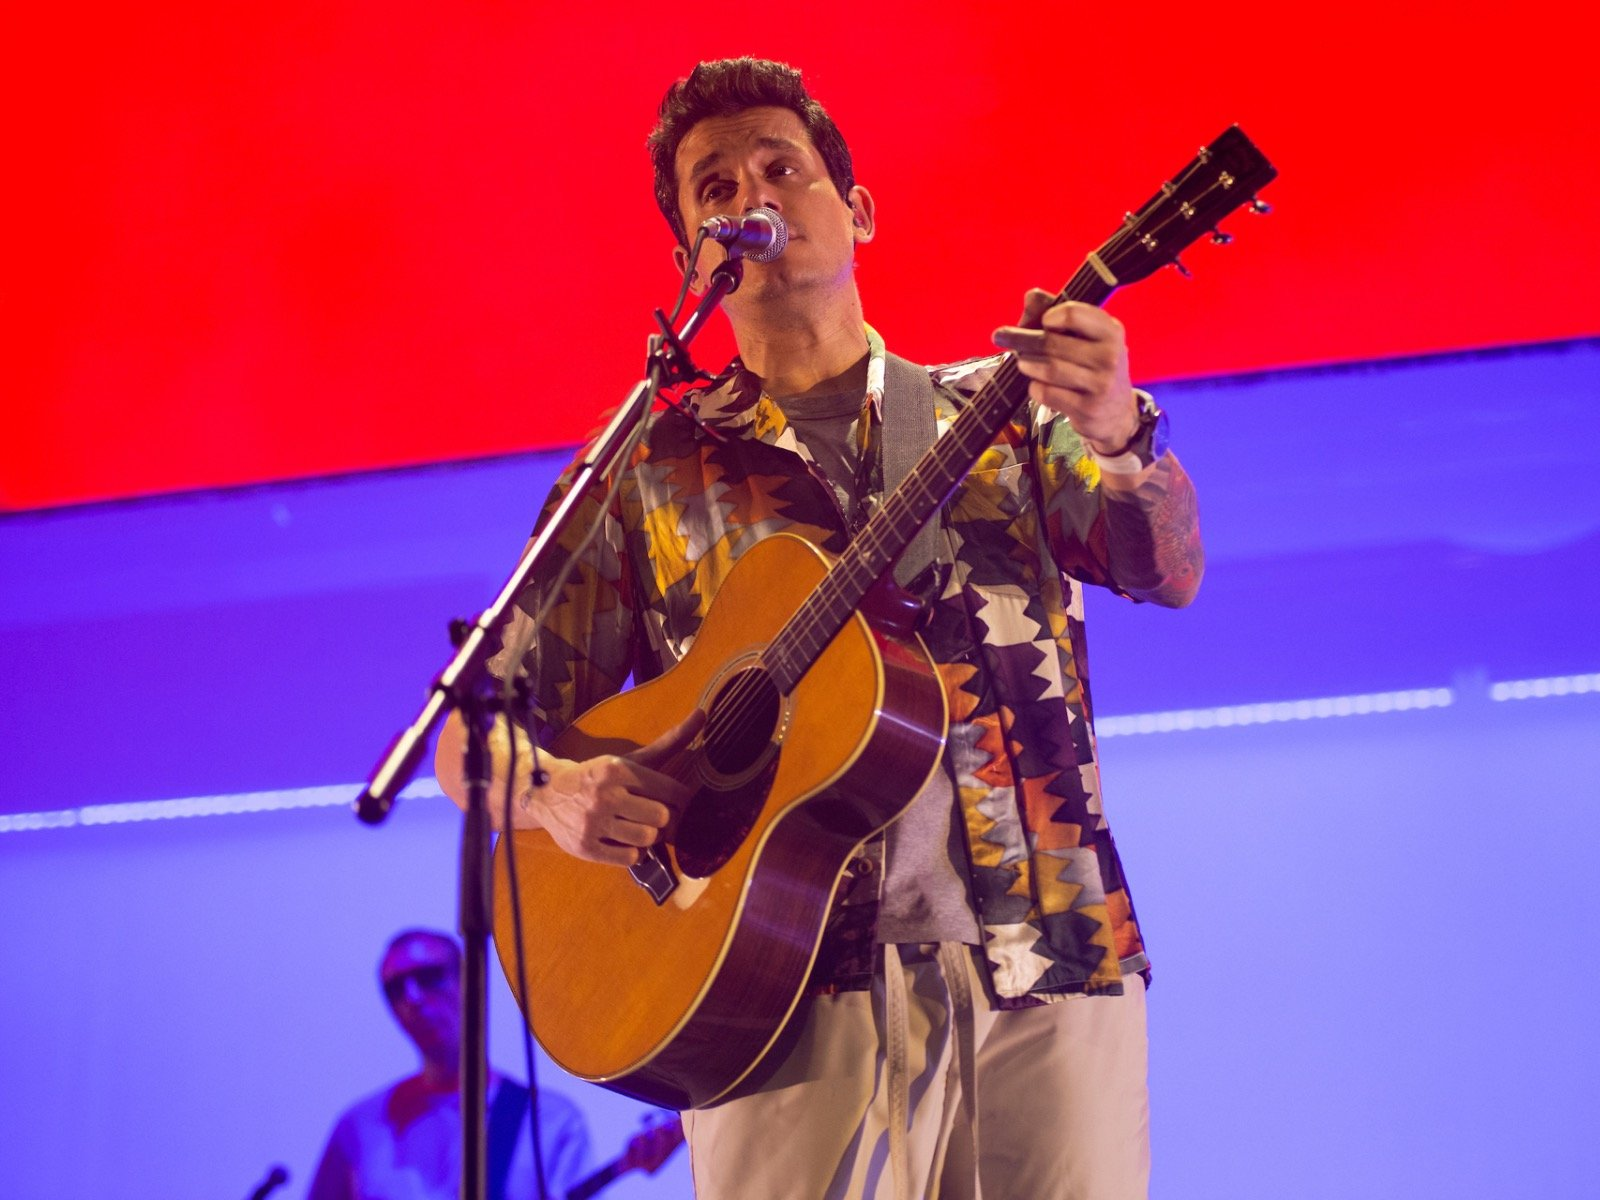 Our favorite things about John Mayer's concert at Fiserv Forum